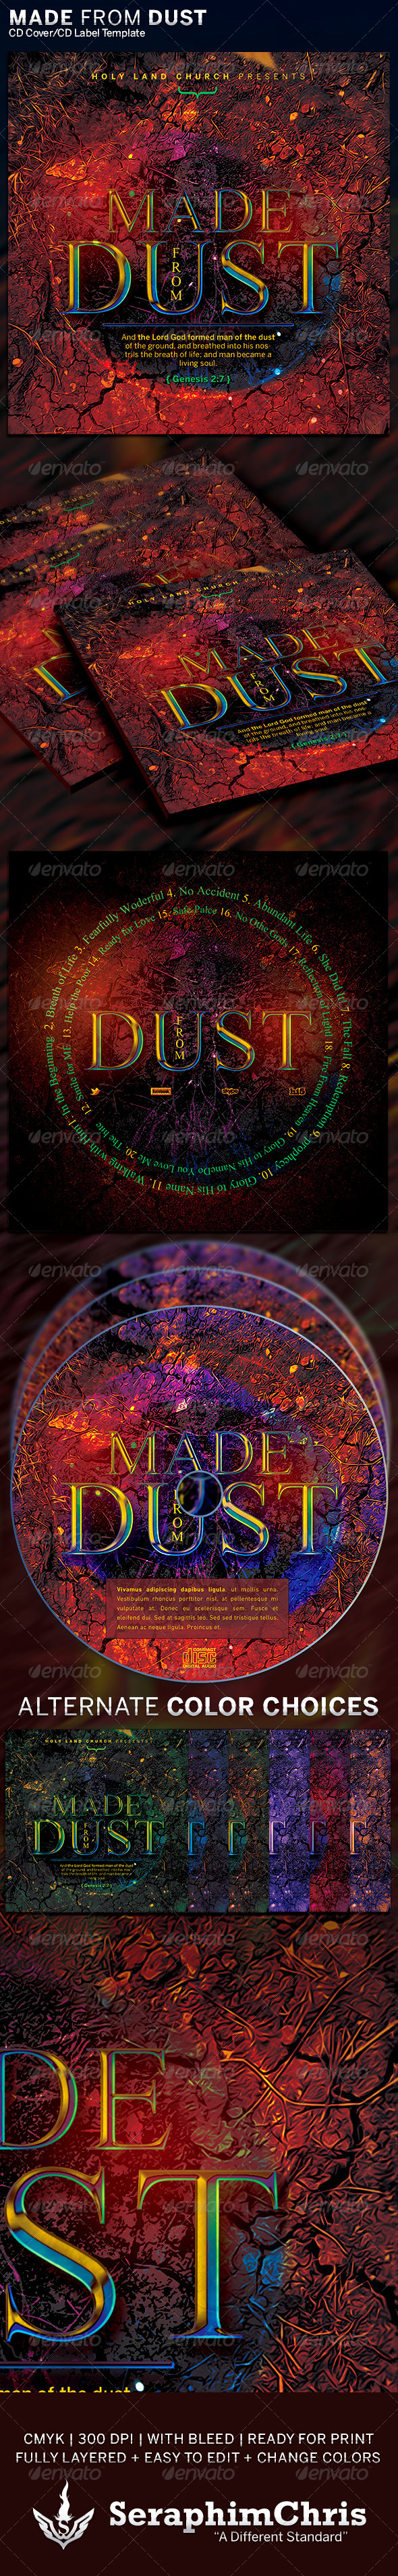 Made from Dust: CD Cover Artwork Template - CD & DVD Artwork Print Templates